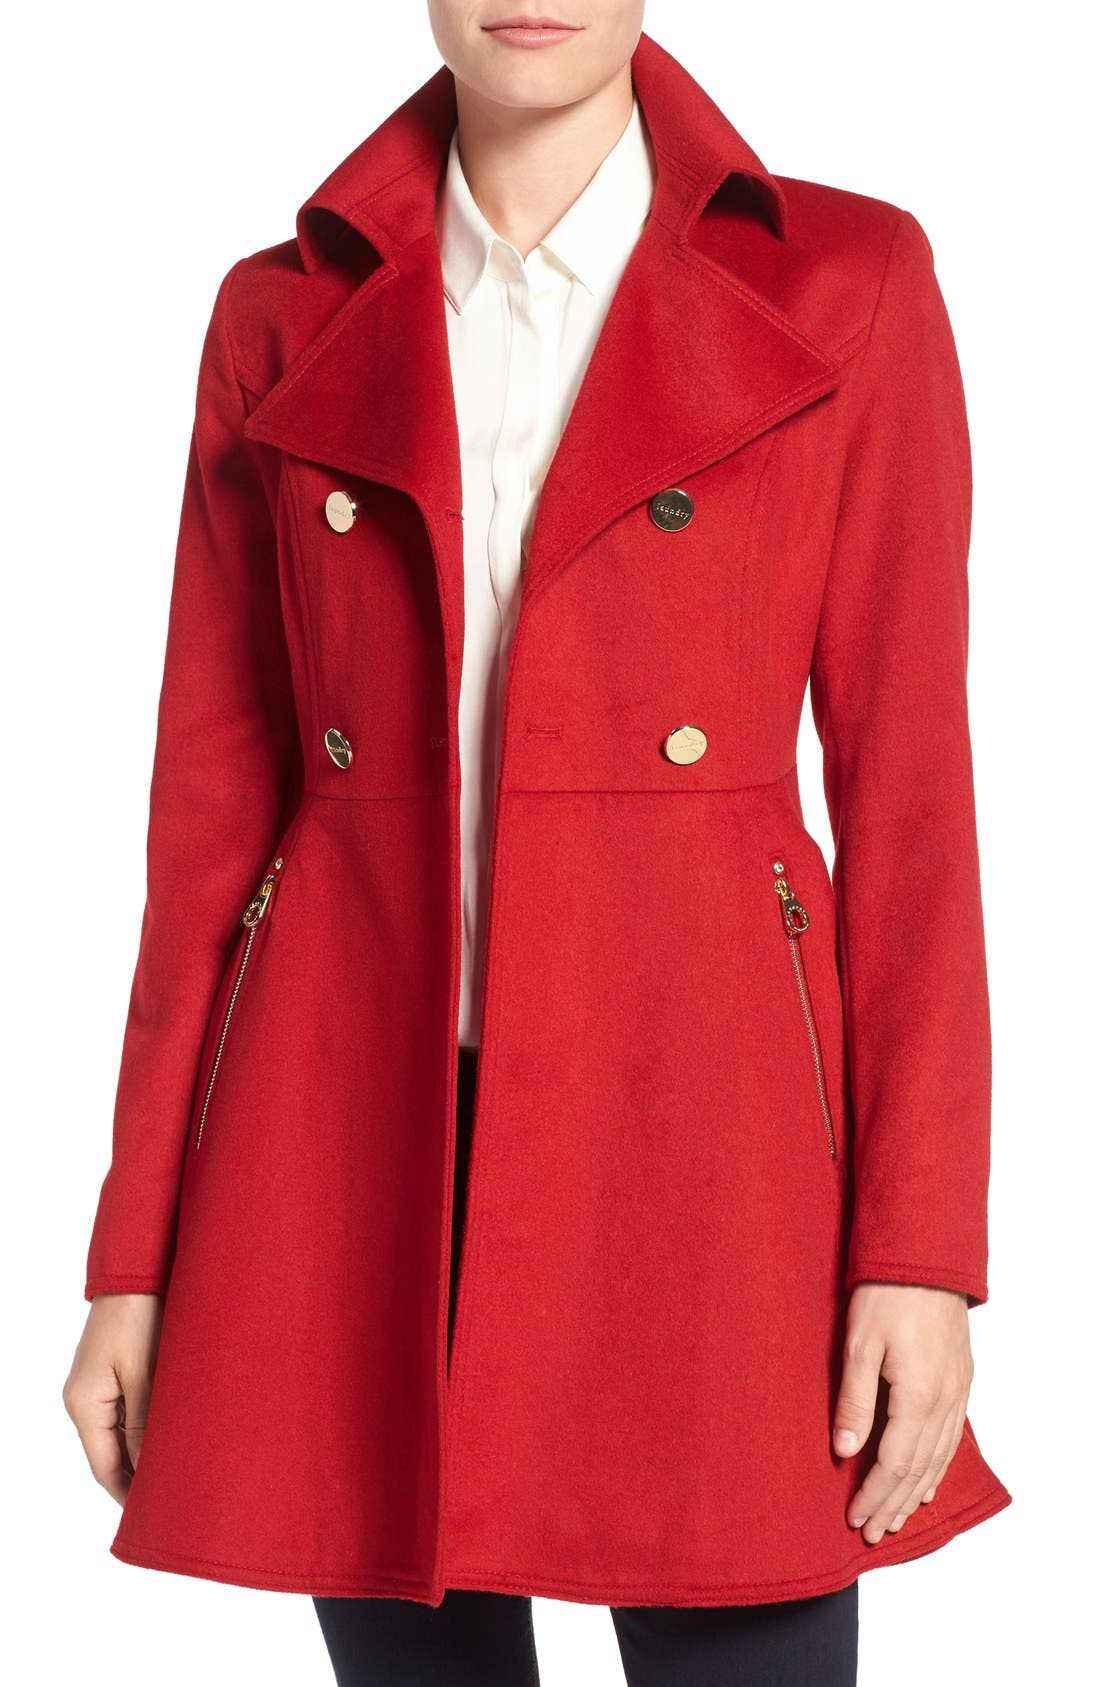 Red Peacoat Coats & Jackets for Women | Nordstrom